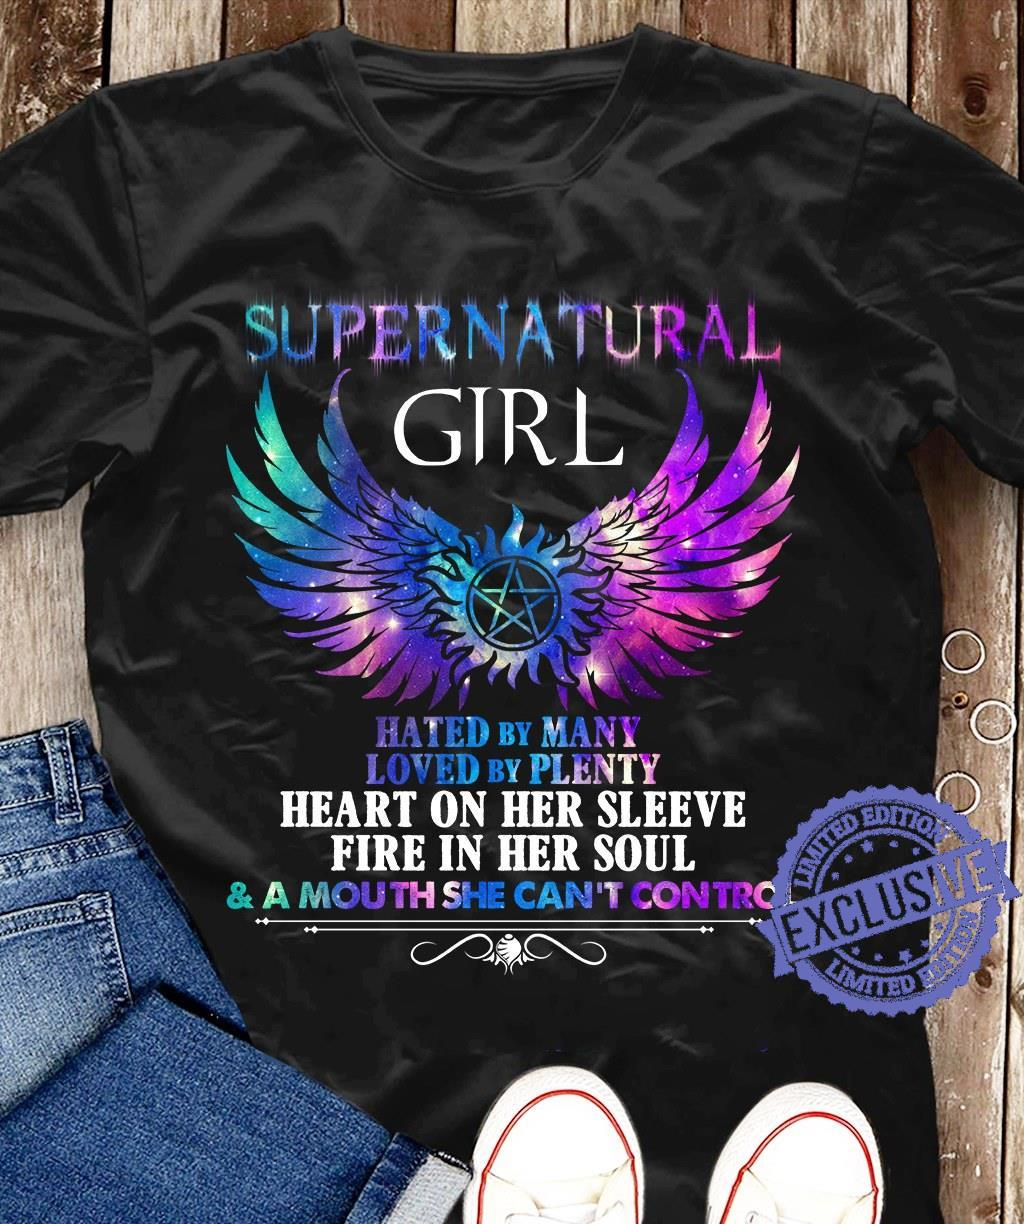 Supernatural girl hated by many loved by plenty heart on her sleeve fire in her soul a mouth she can't control shirt